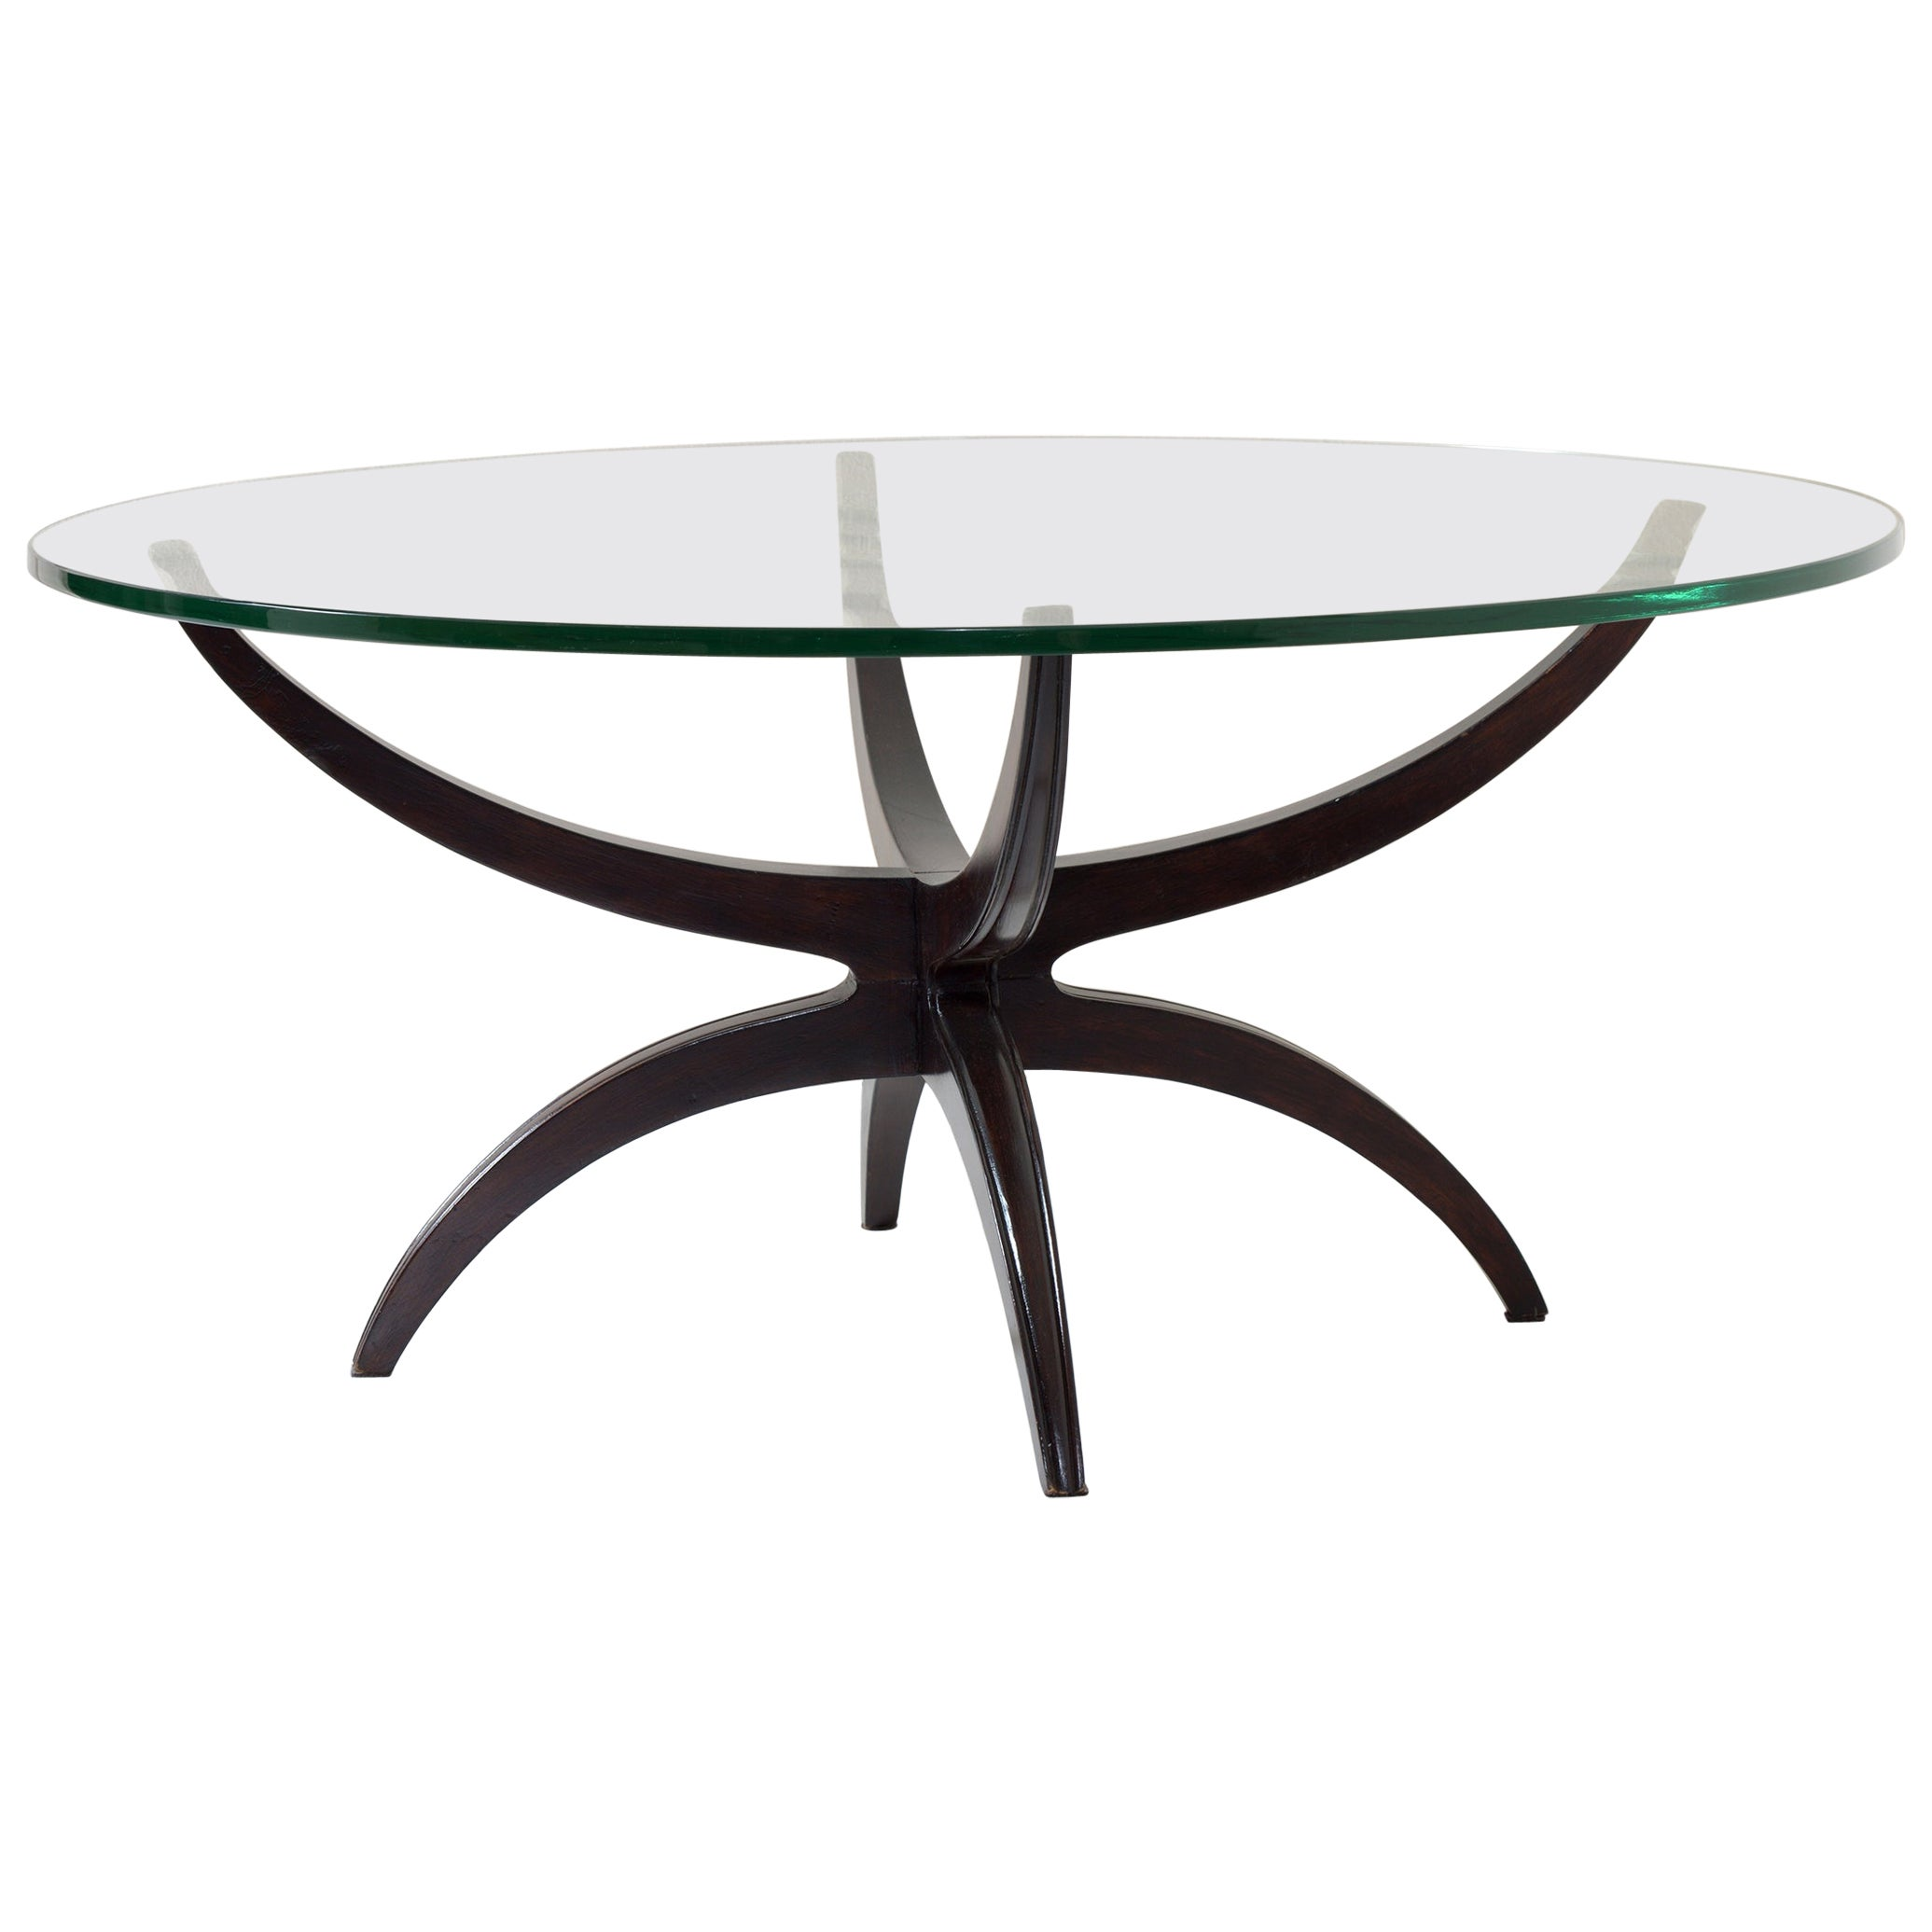 Midcentury Italian Round Coffee Table Thick Bevelled Glass Top, 1950